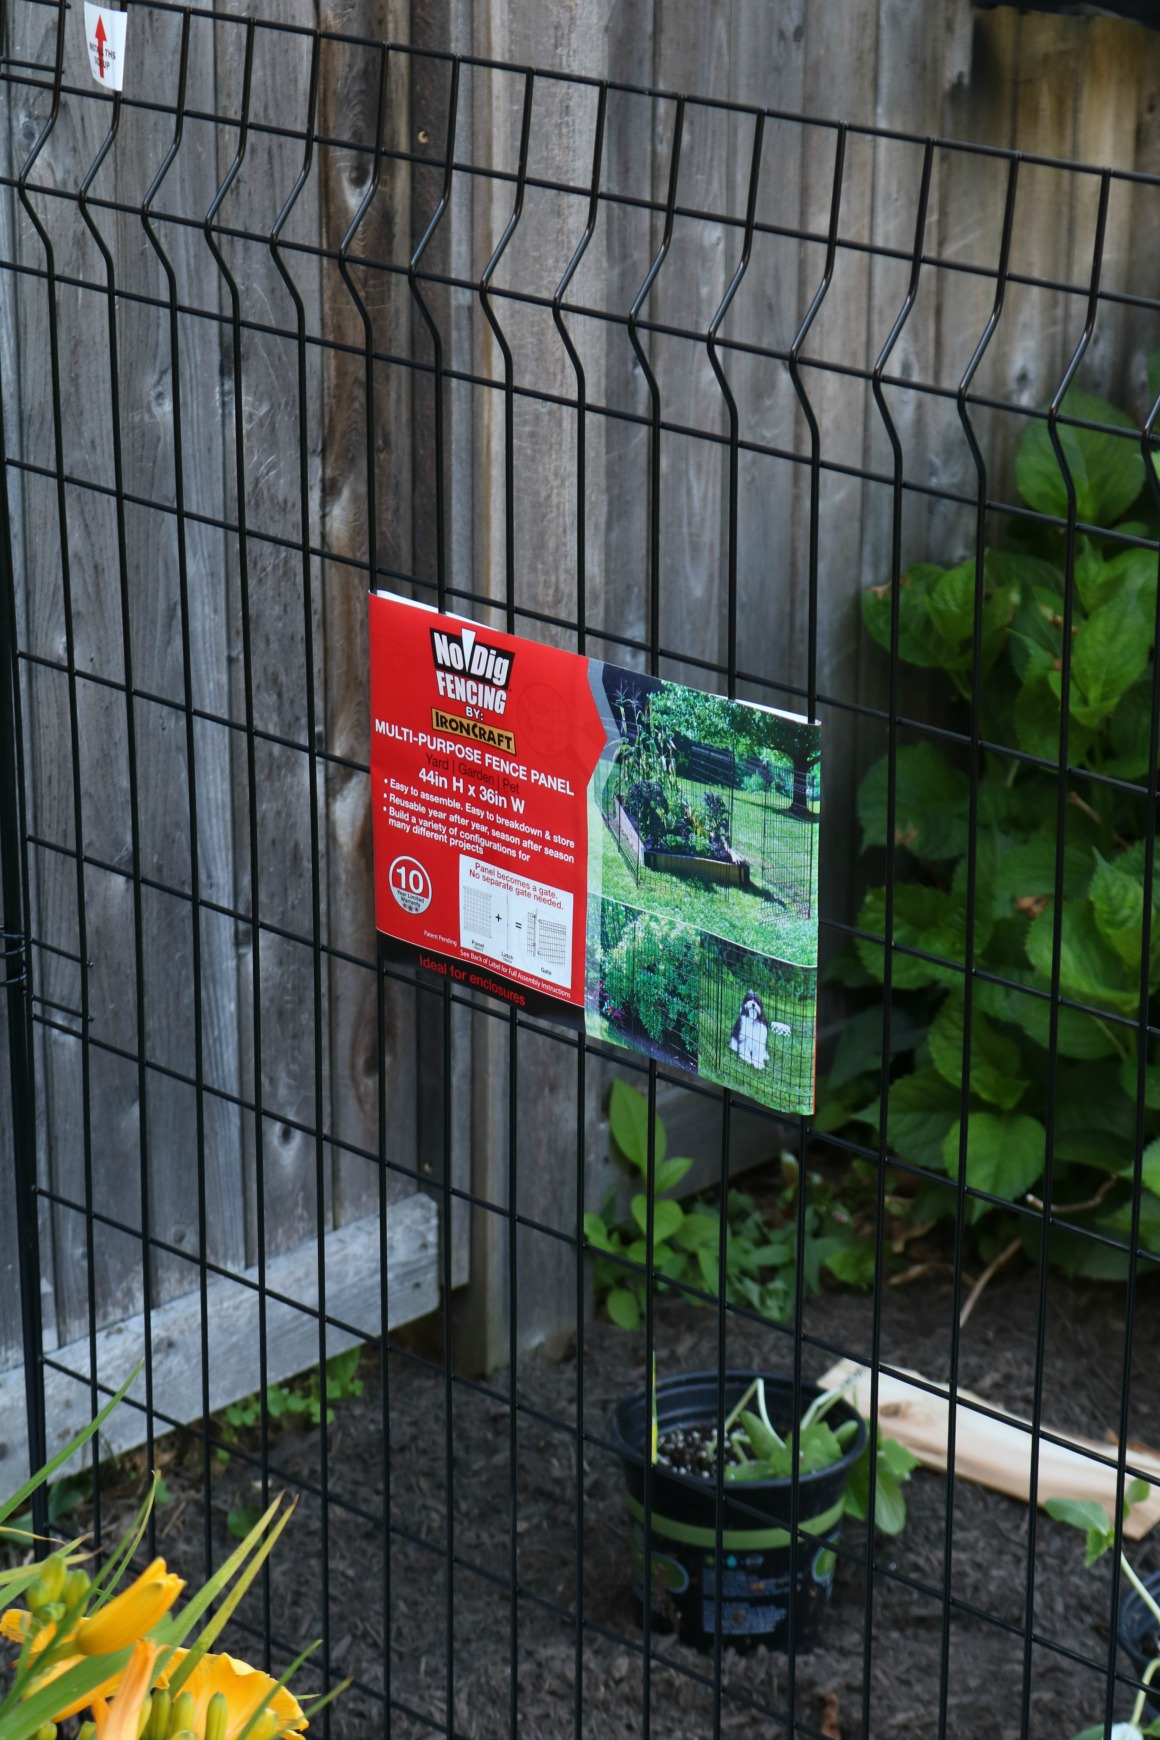 Our new Garden- Tips on Keeping Animals Out